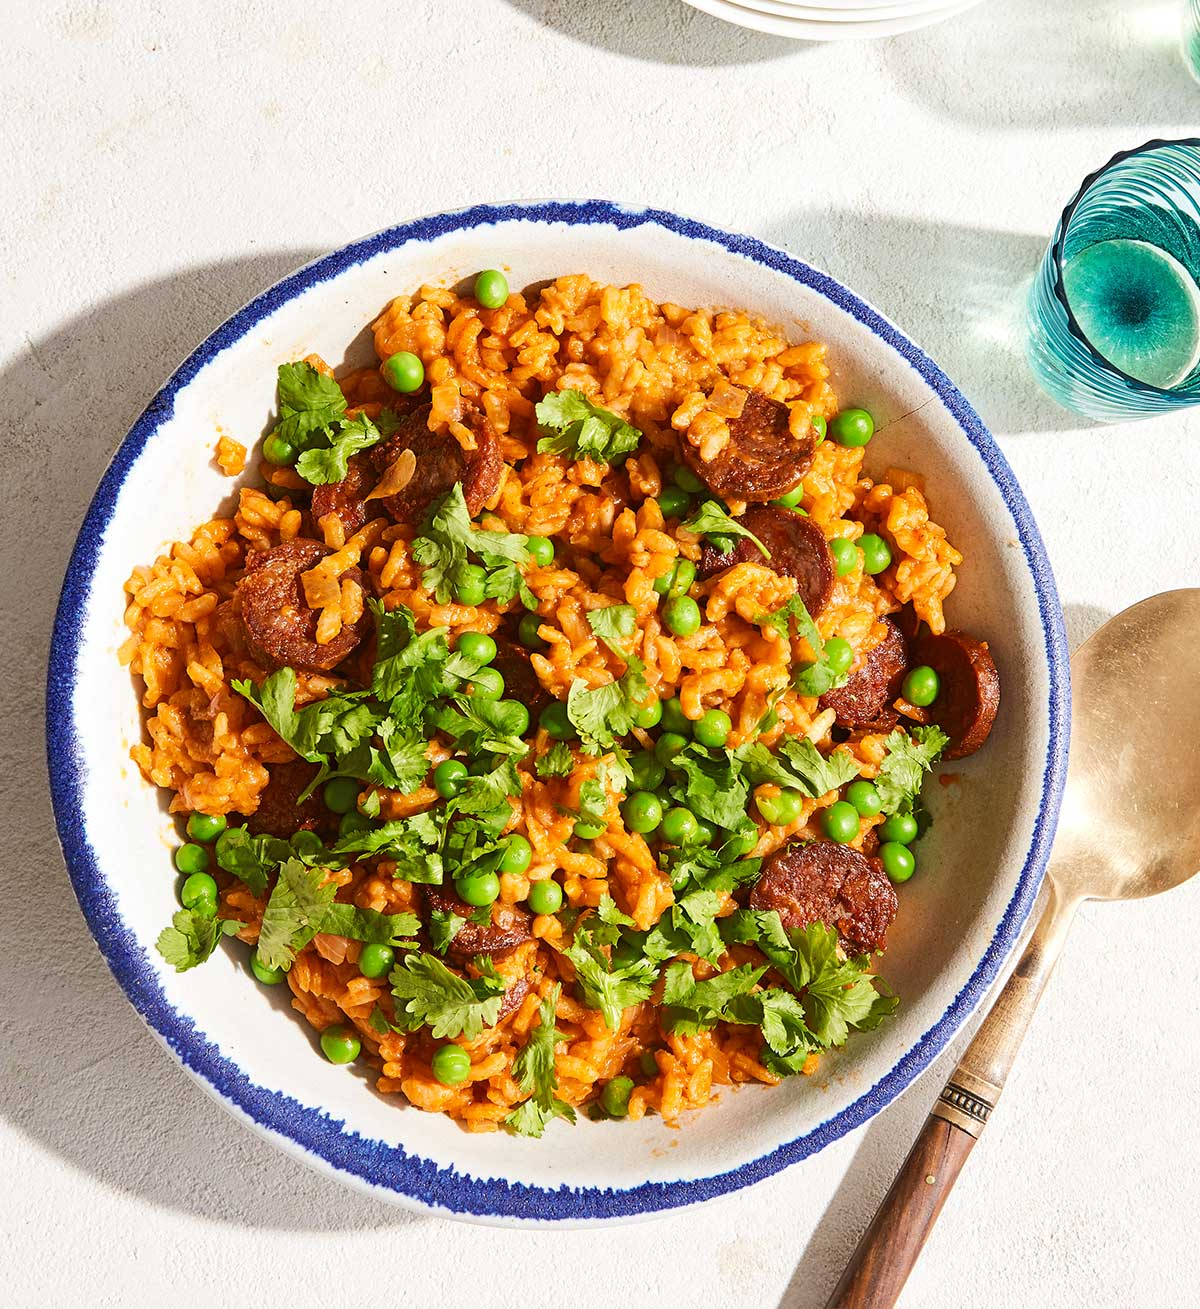 A bowl of paella-inspired risotto